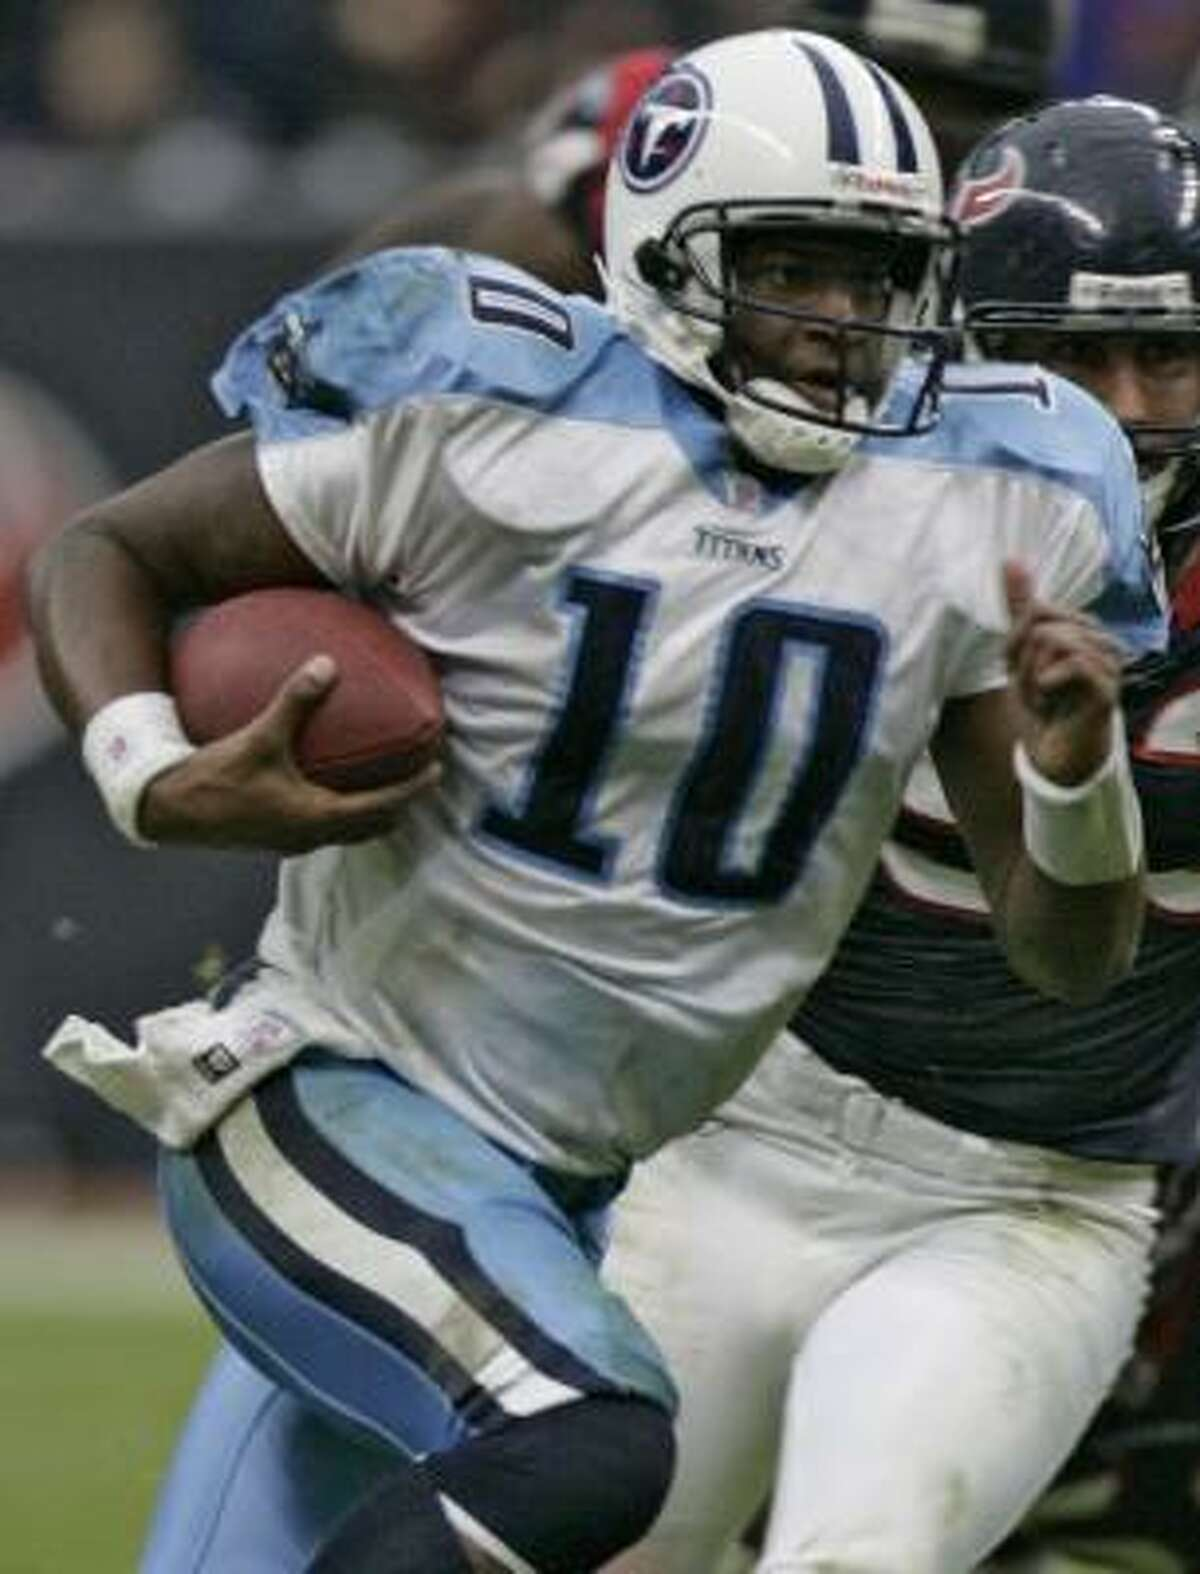 There's no shame in being called a Mama's Boy if you are Titans quarterback Vince Young.